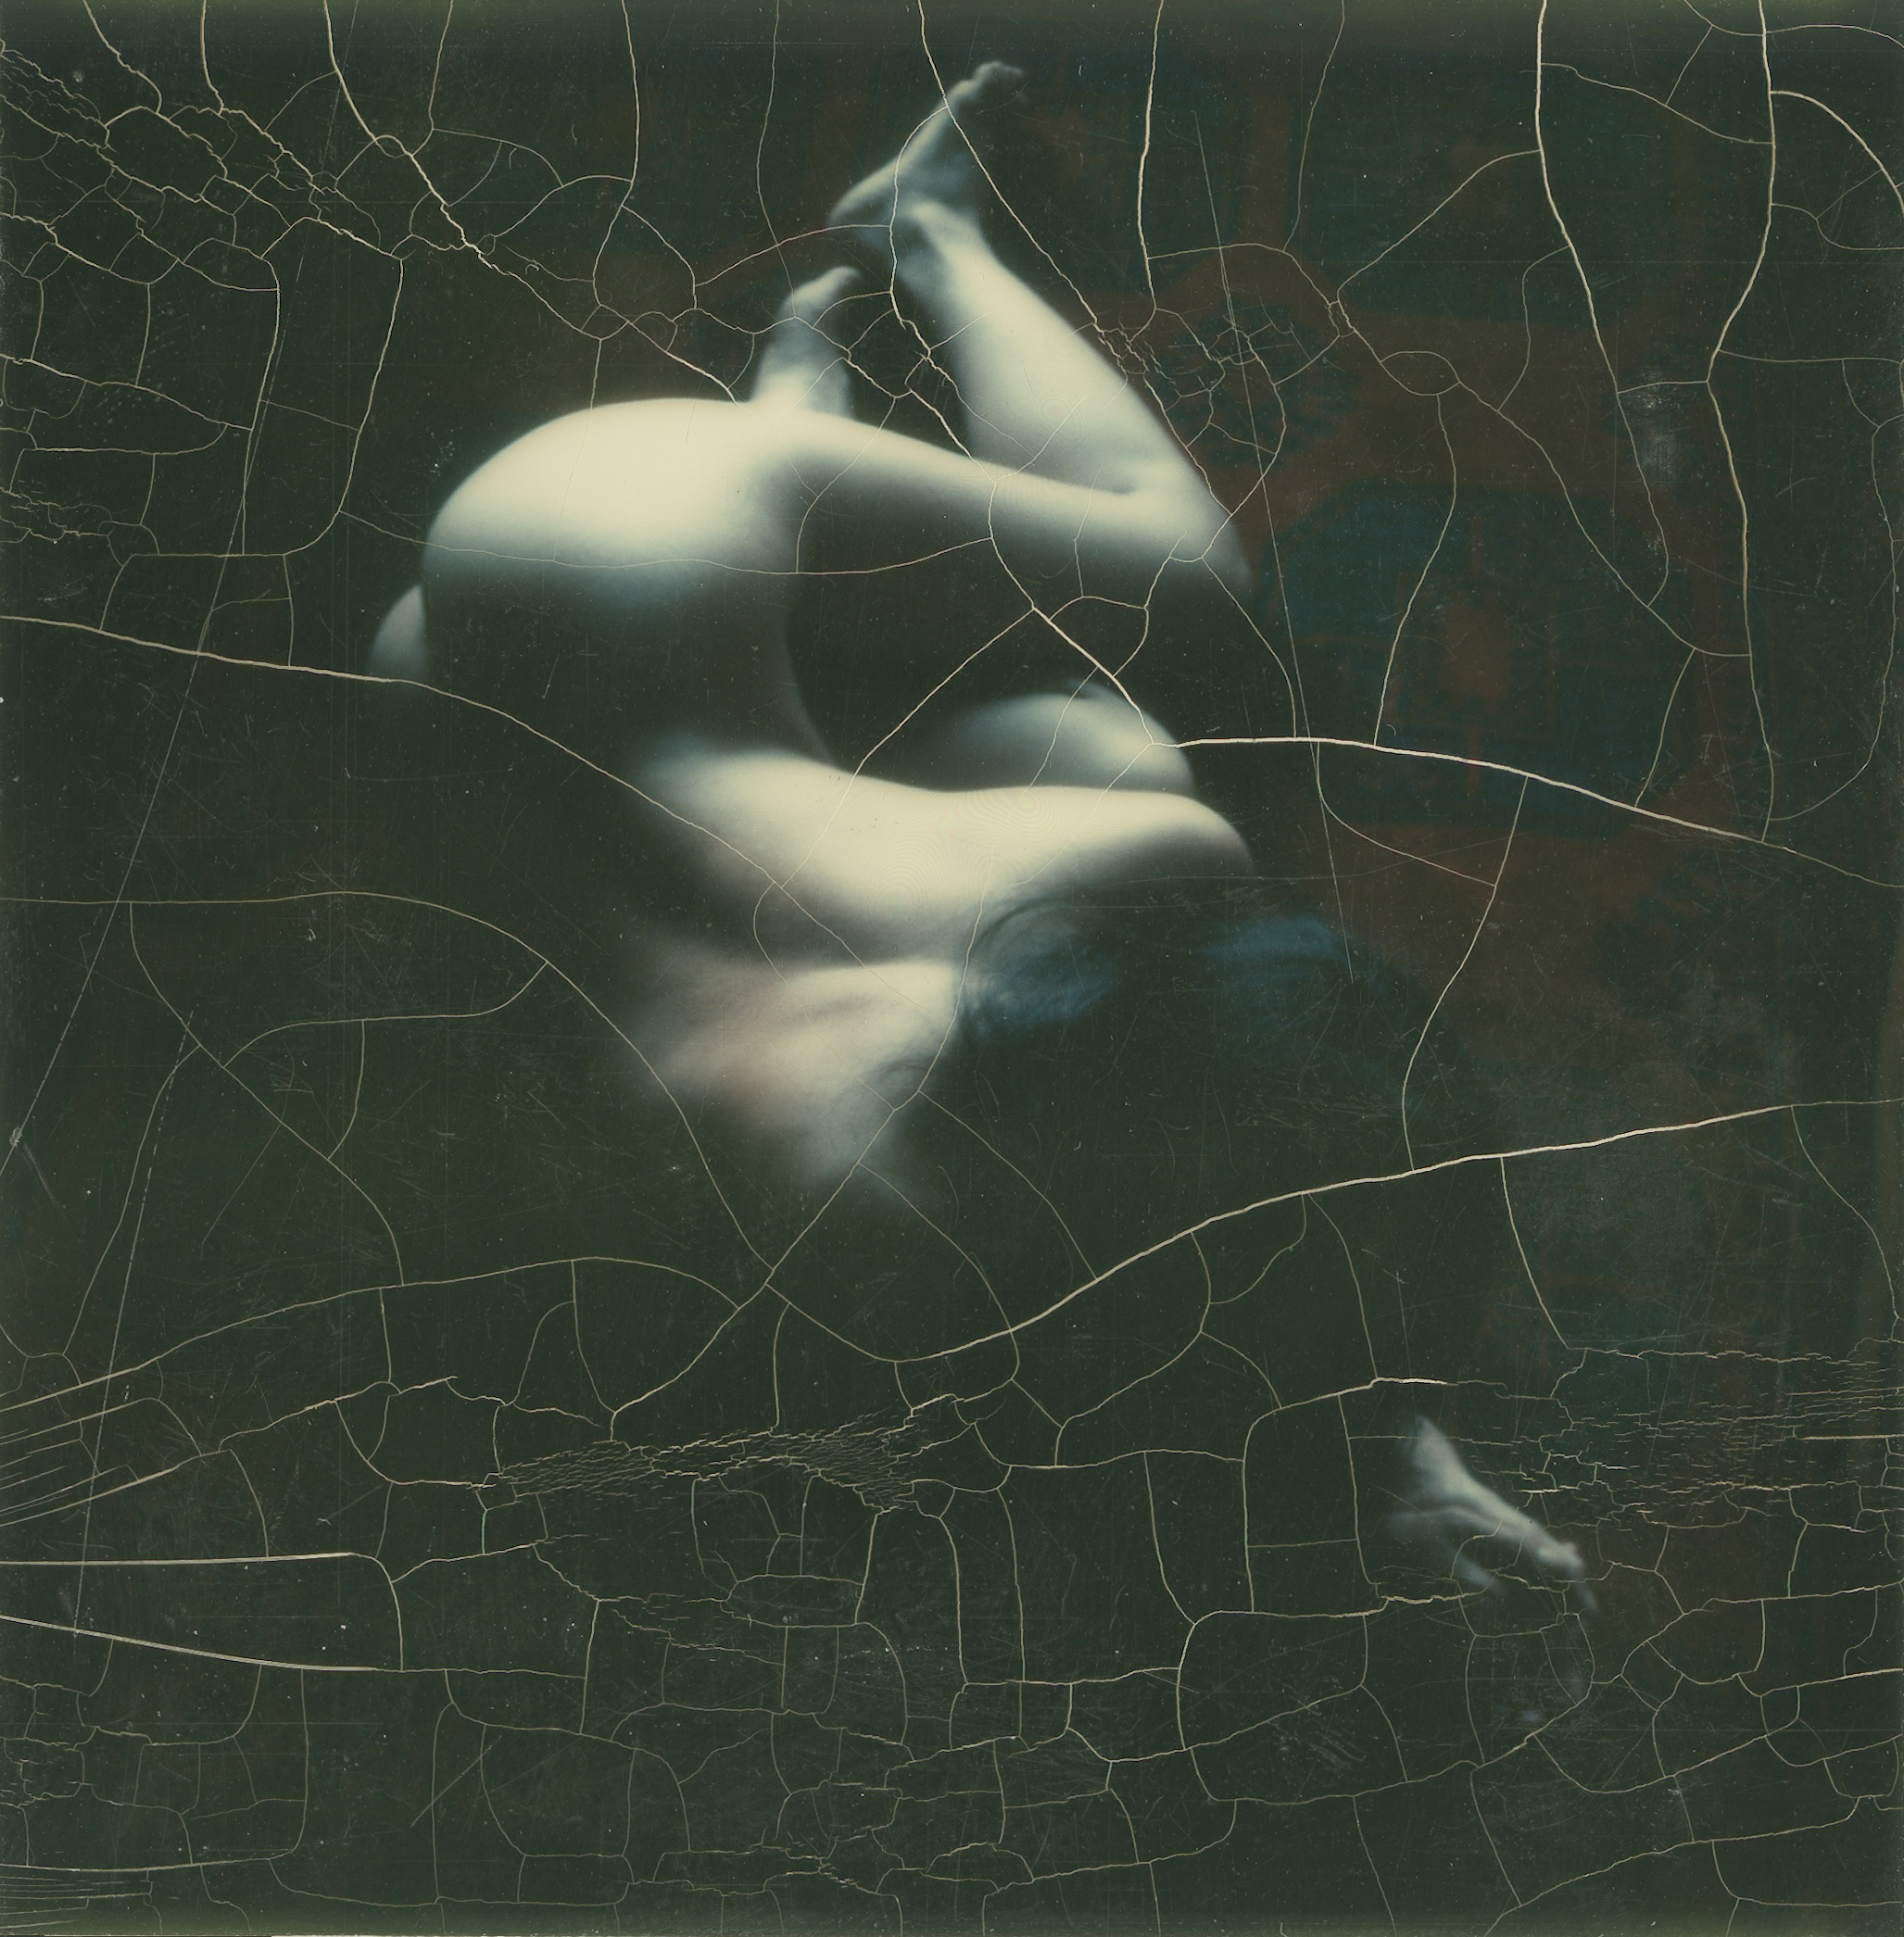 Nude photographed with a Polaroid SX-70 camera, 1972.